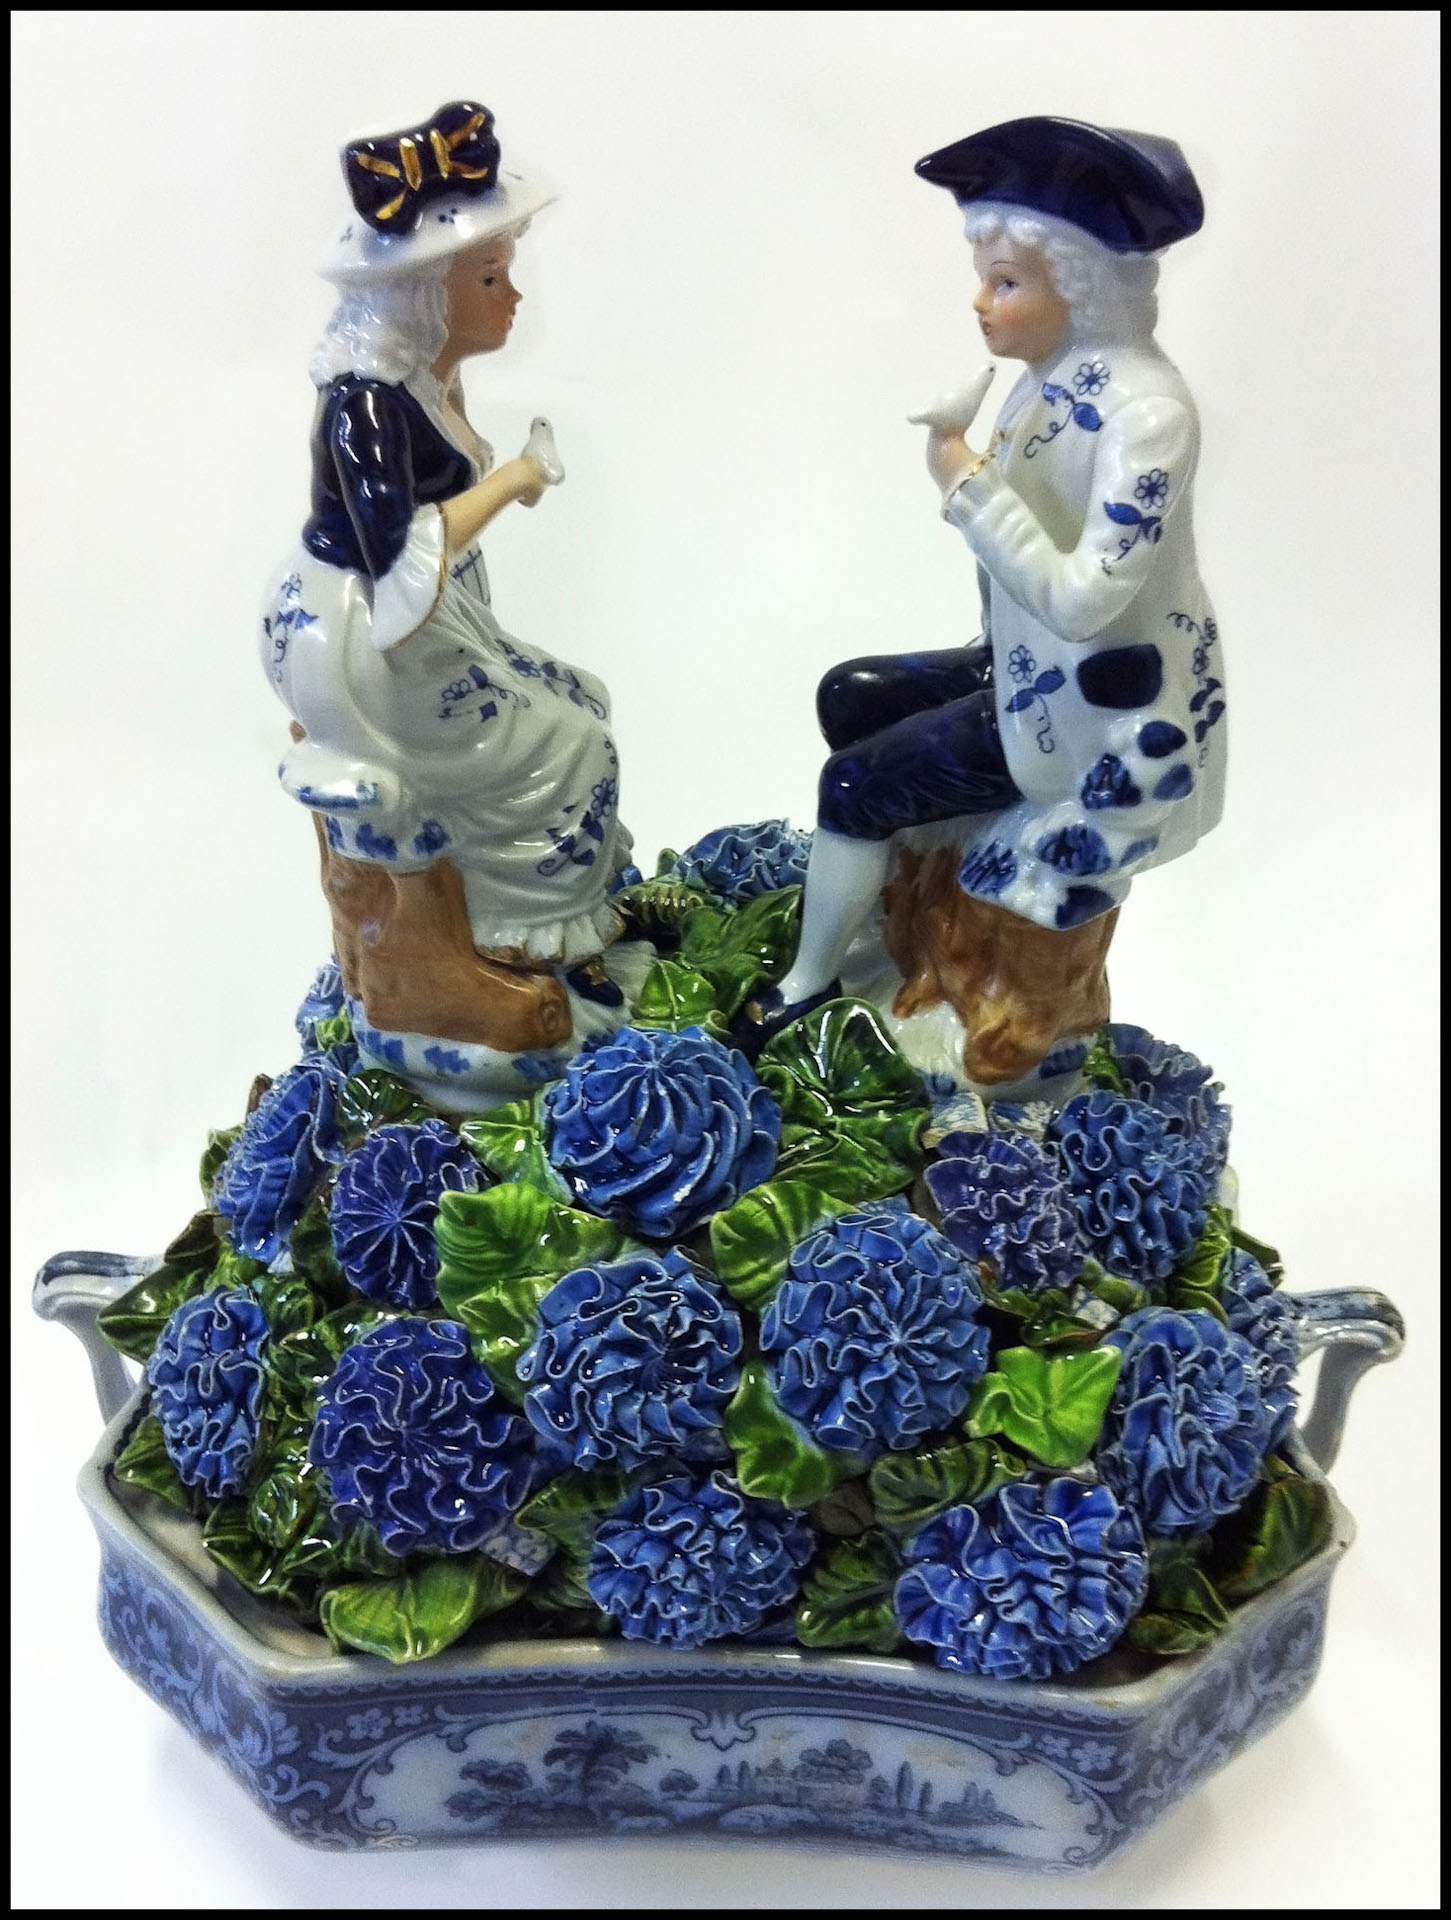 """BLUEBERRY HILL 13"""" x 12"""" x 8""""   3D sculpture example  using blue and white china and figurines. ( view more pieces like this under topiary section)"""